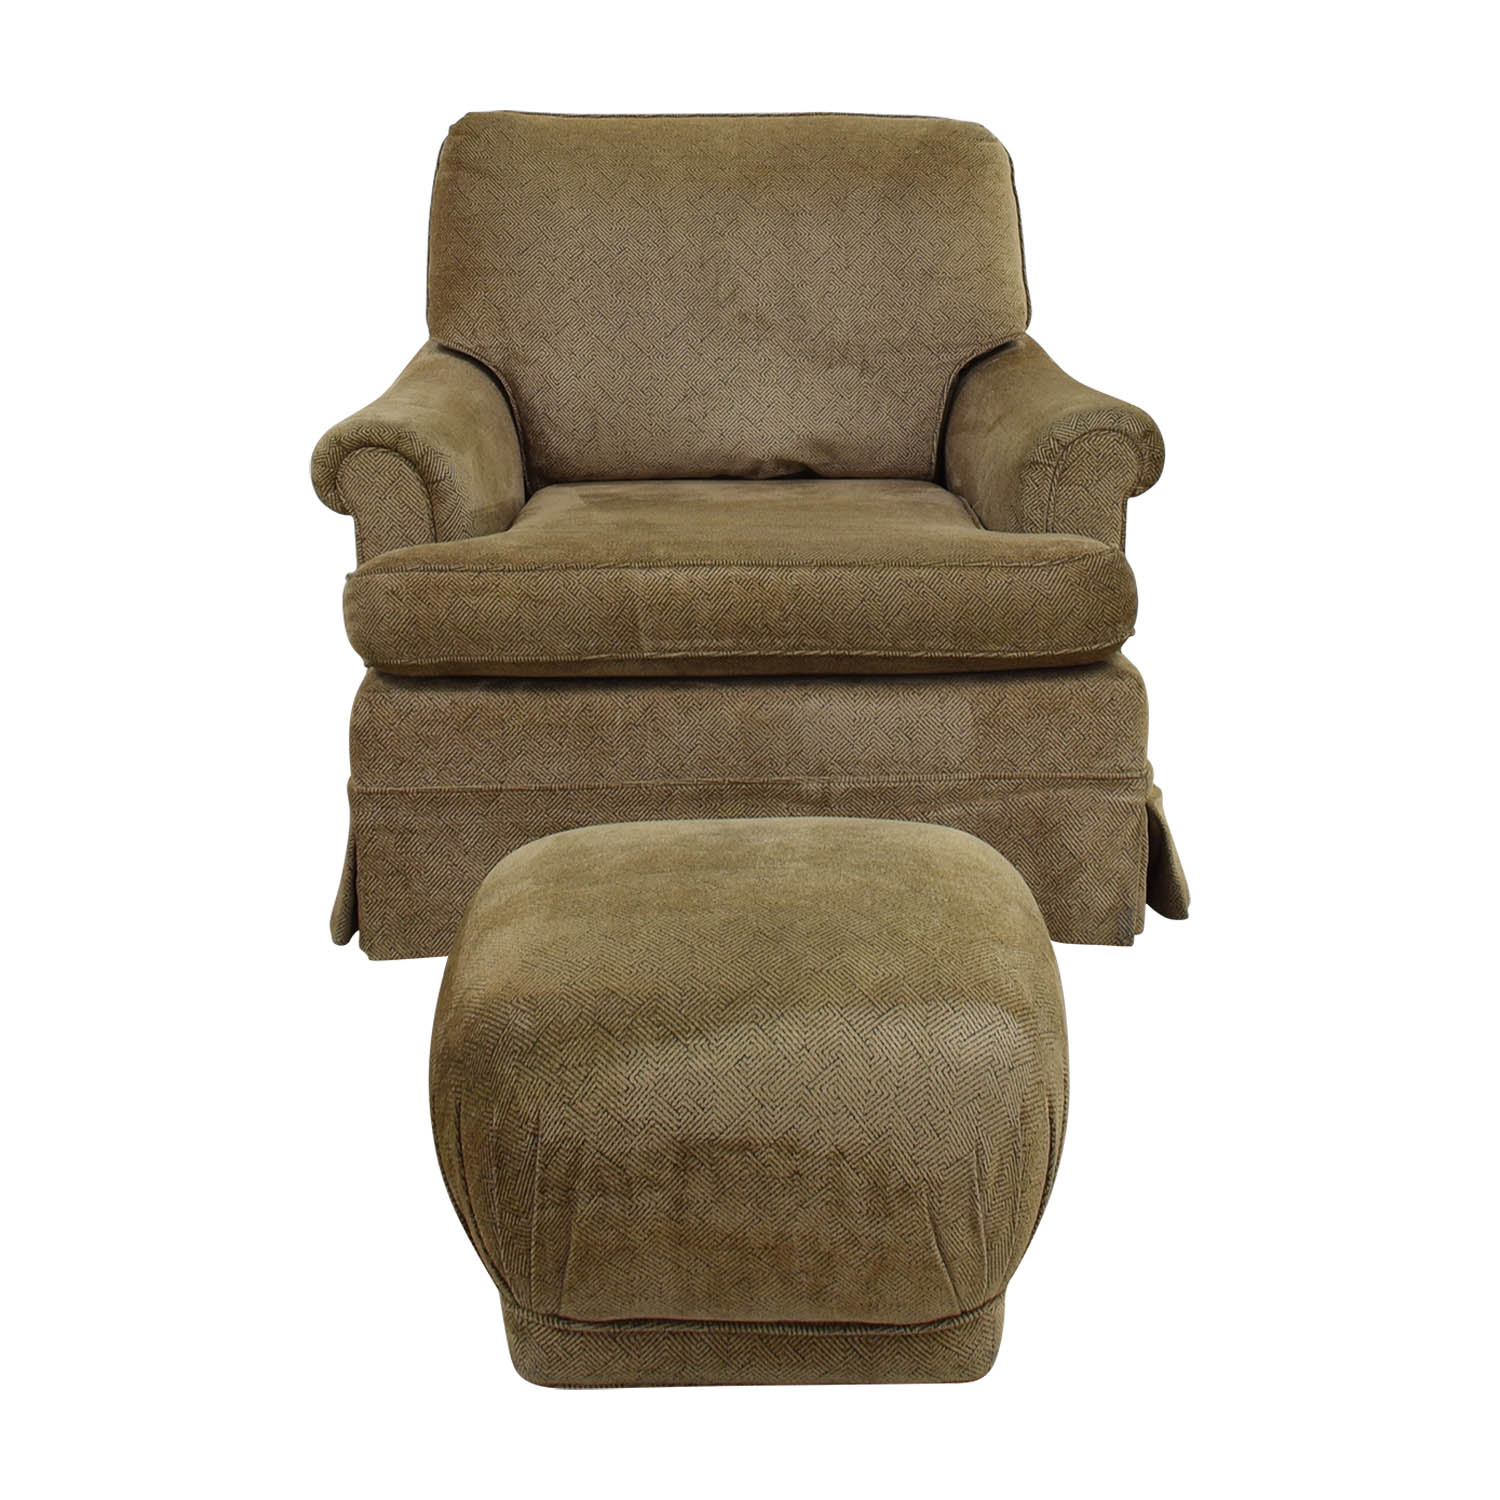 Tan Upholstered Accent Chair with Foot Stool